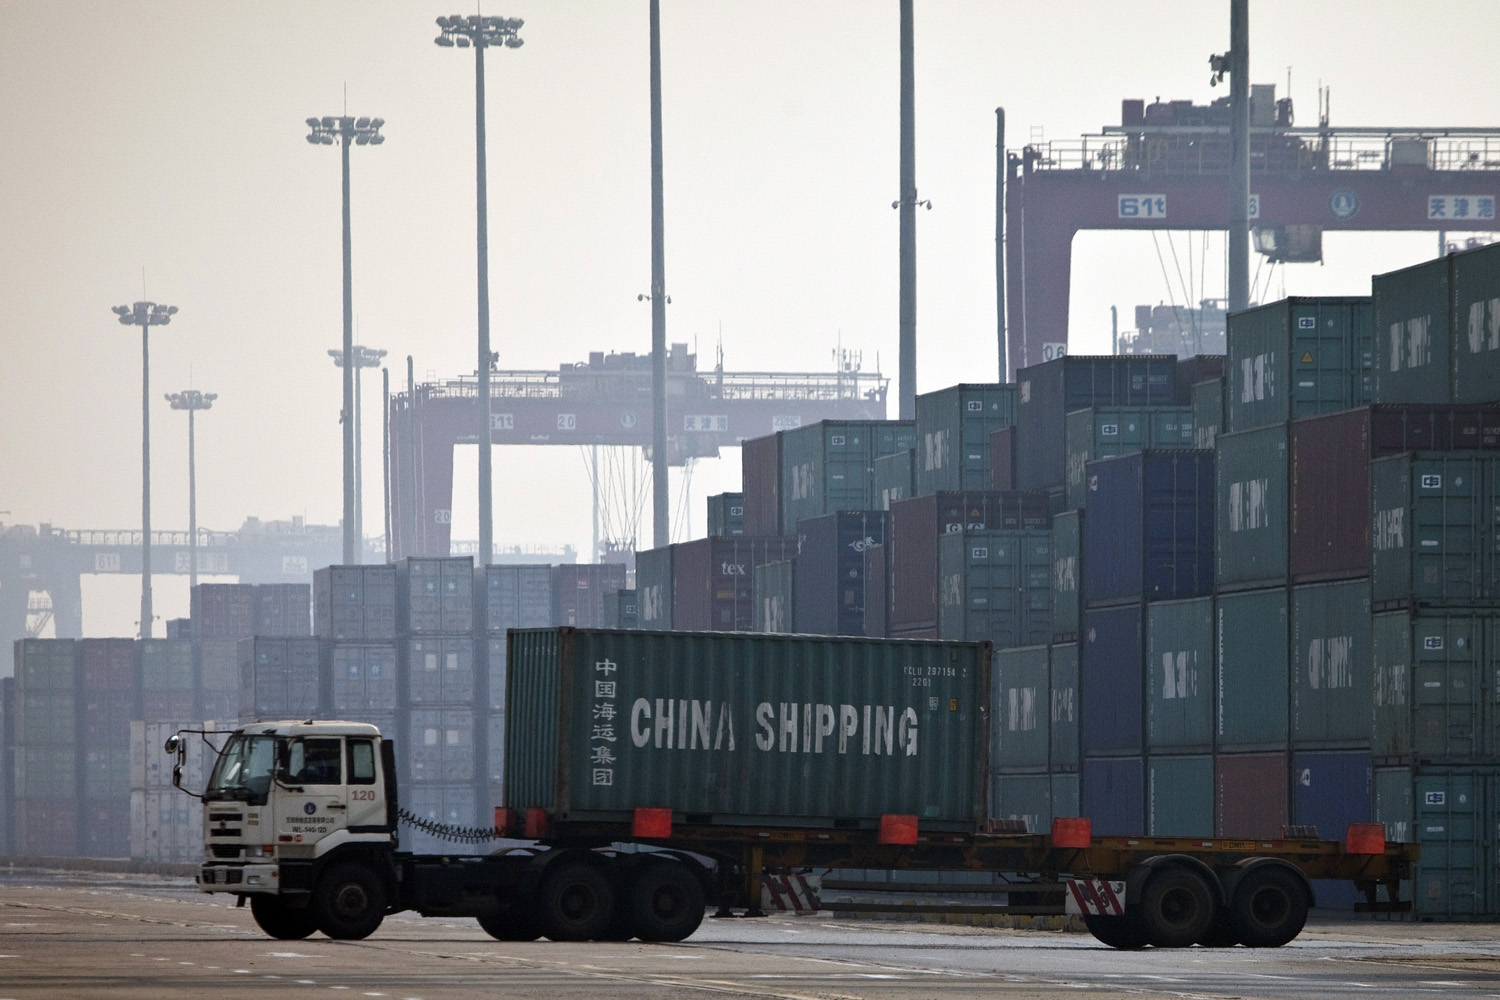 In this photo taken Tuesday, Feb. 28, 2012, a truck transports a container to be loaded onto a ship at a port in Tianjin, China. (Alexander F. Yuan/AP)